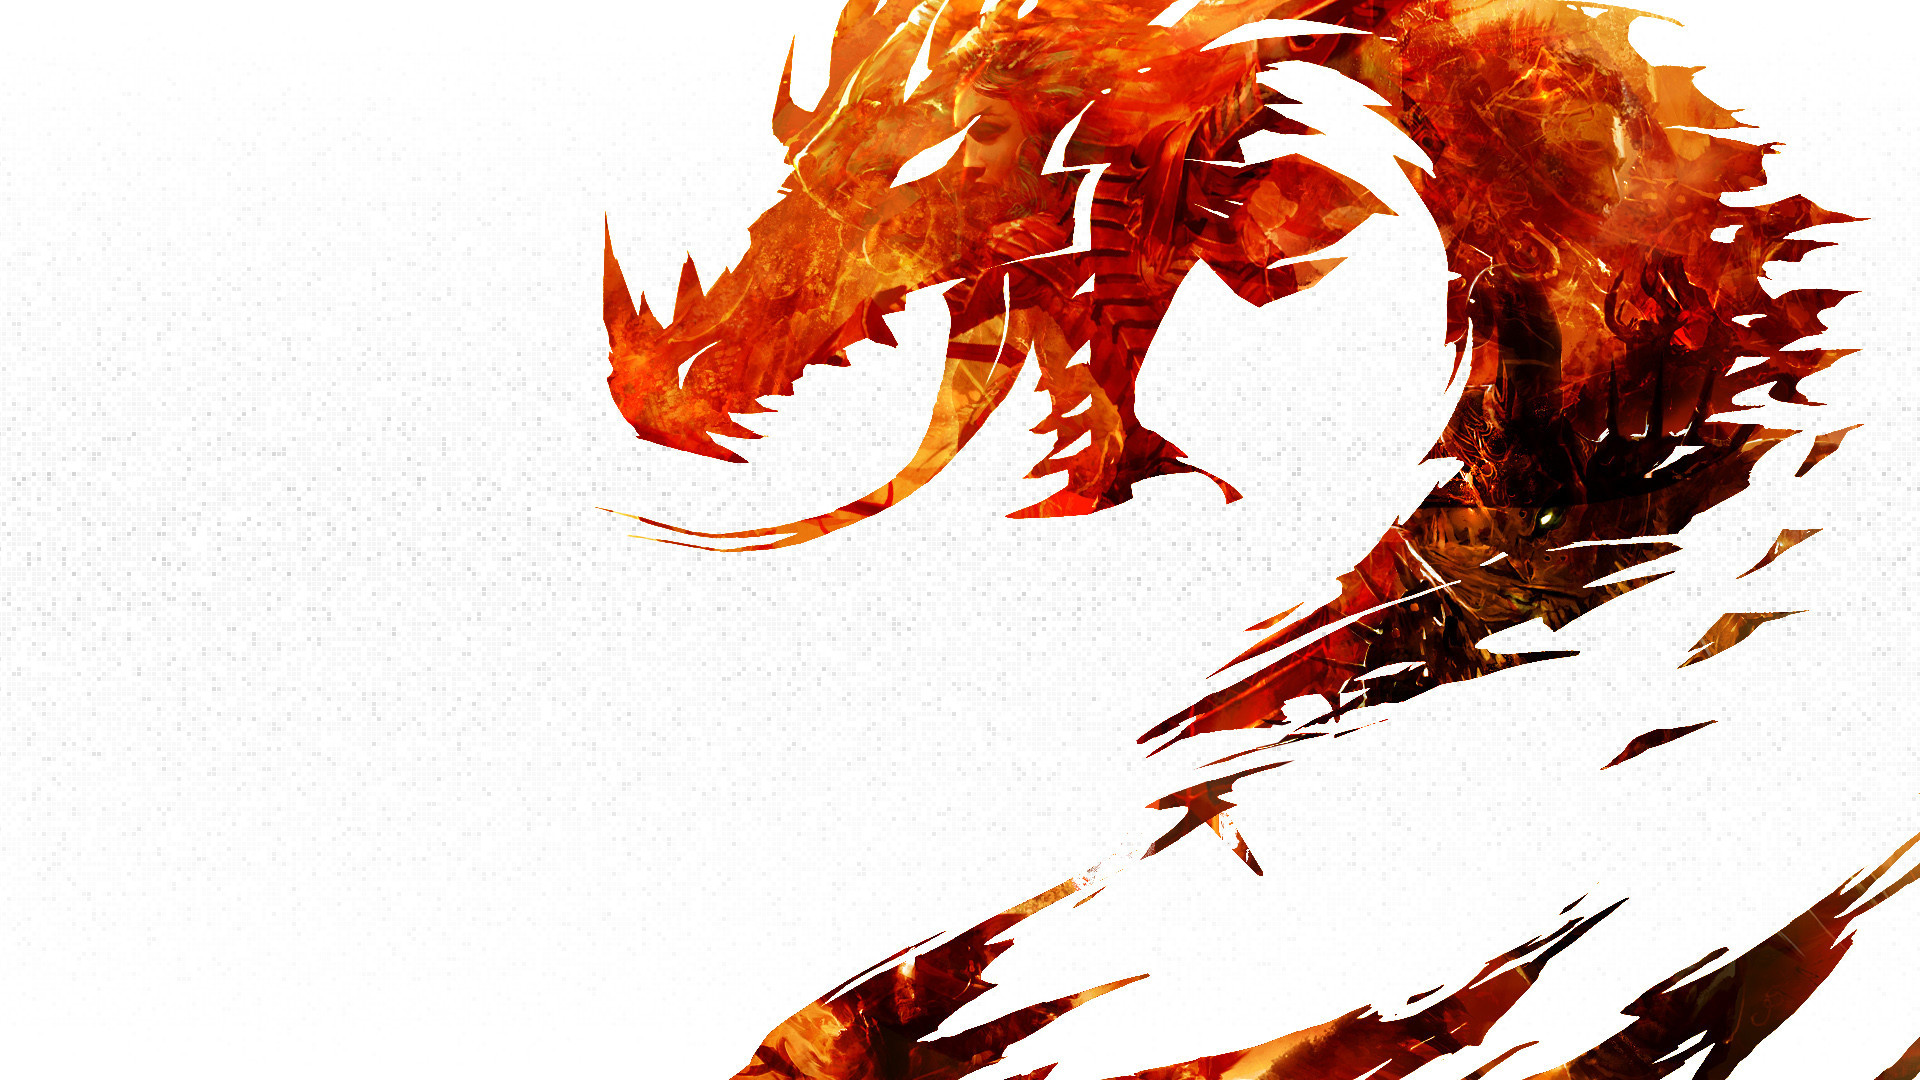 1920x1080 Chinese Dragon On A Black Background Wallpapers And Images